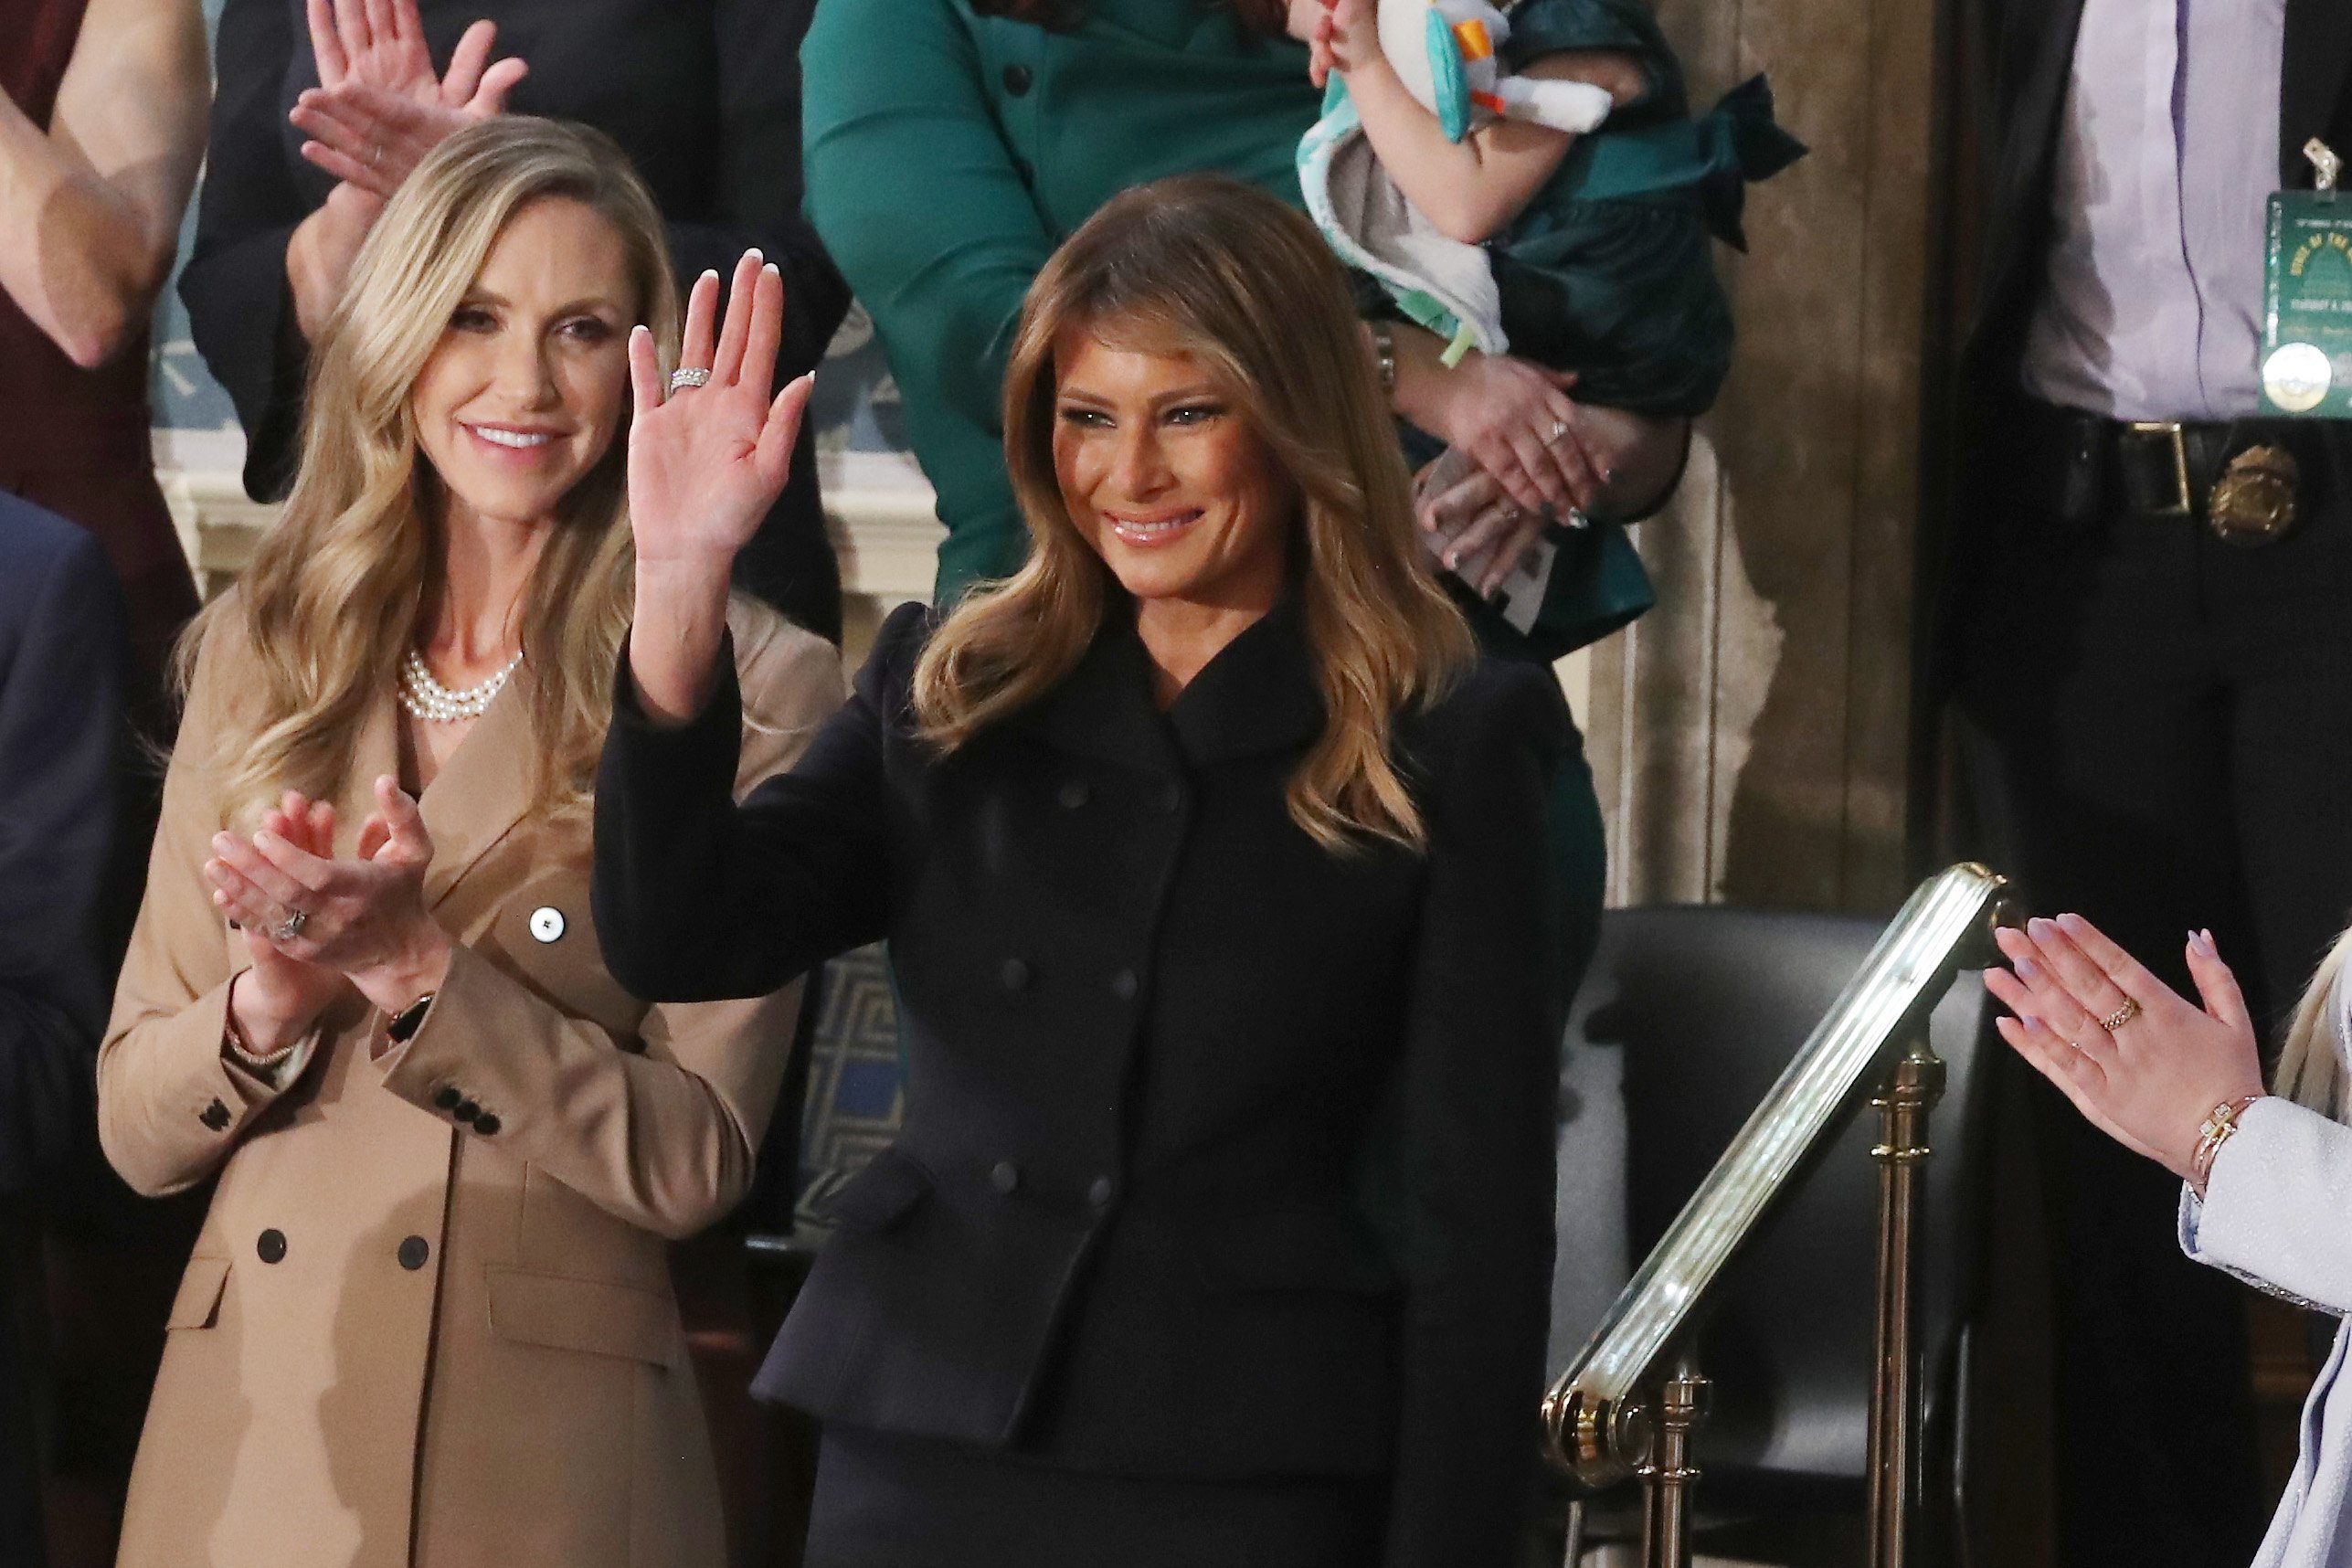 Melania Trump waves from the First Lady's box during the State of the Union address on February 04, 2020, in Washington, DC. | Source: Getty Images.